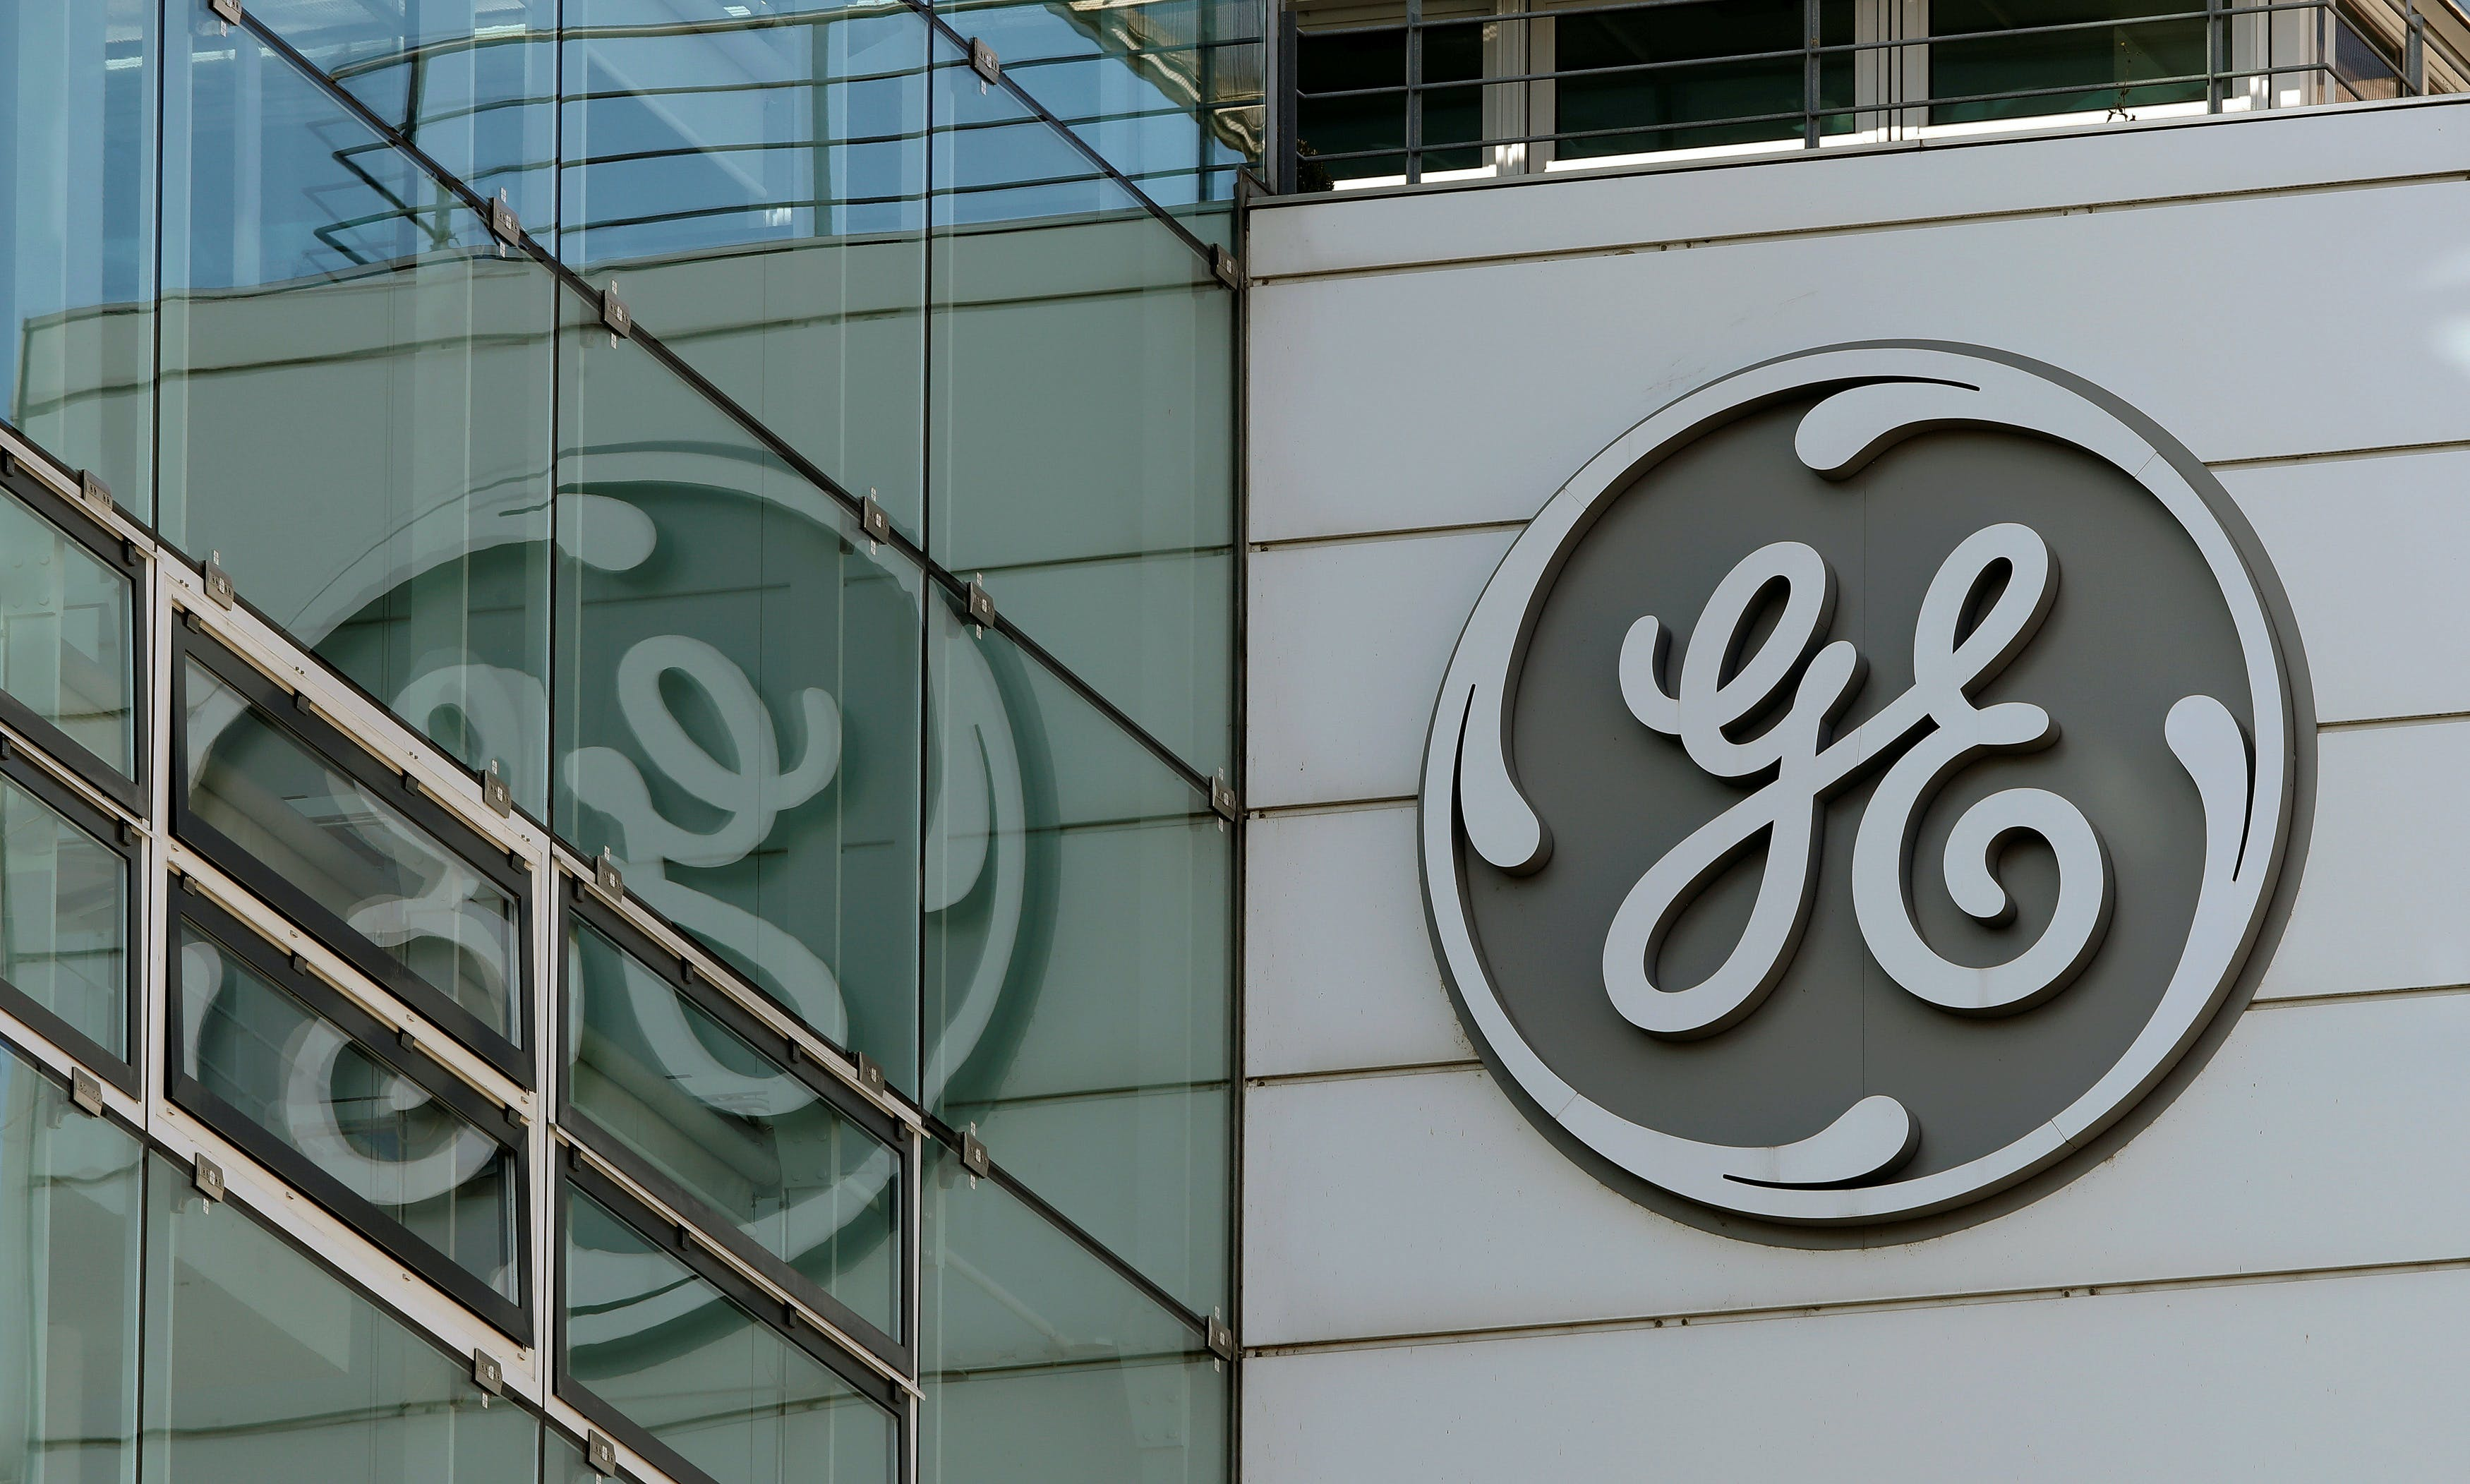 Taipower Loses Nuclear Reactor Dispute With GE, Must Pay US$158m